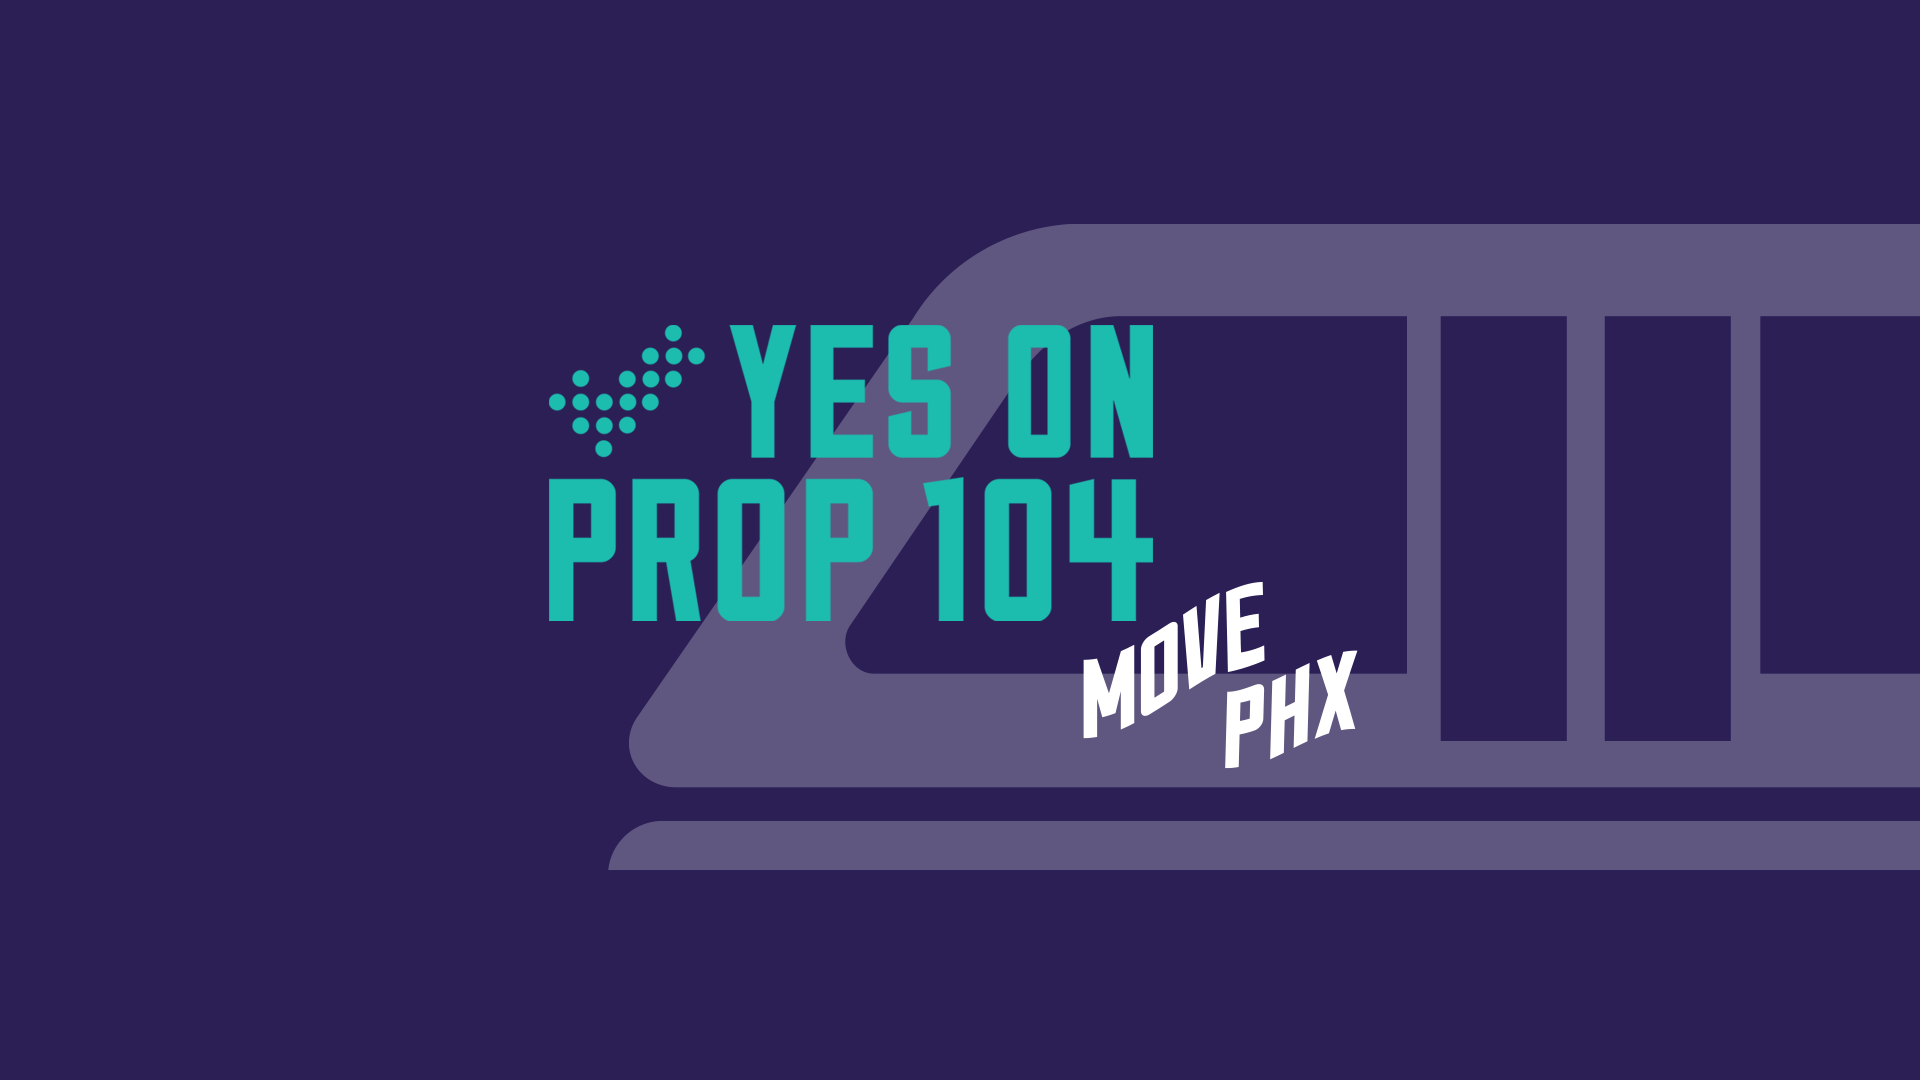 Proposition 104-MovePHX Transportation Initiative